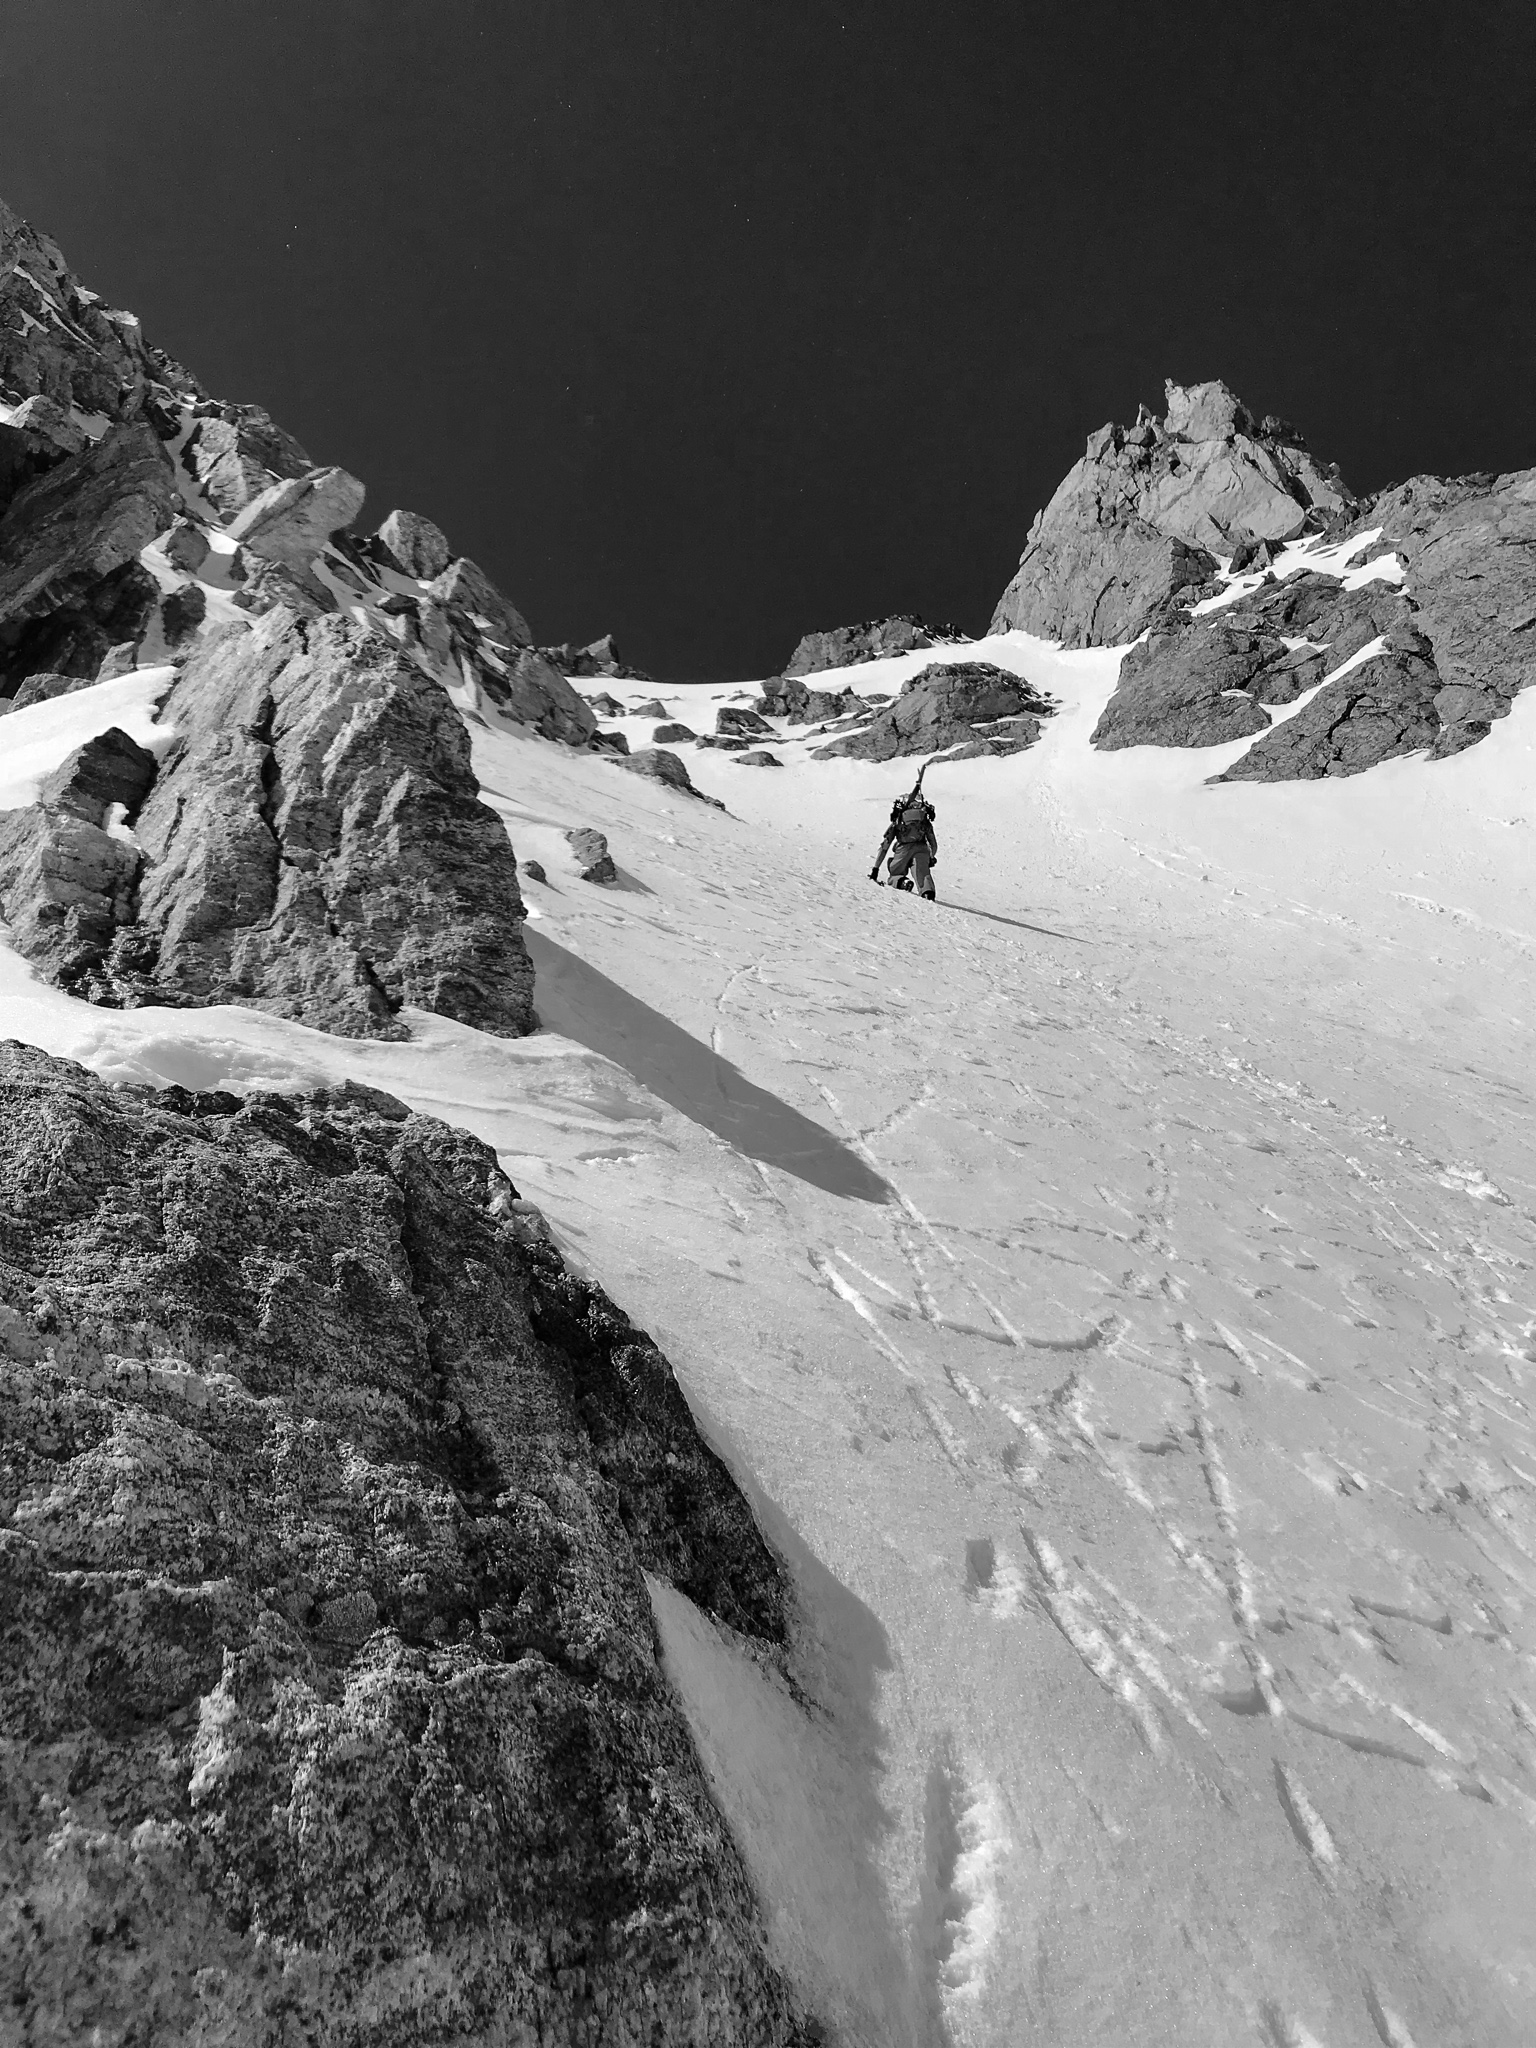 Exploring the Greater Yellowstone Area via Splitboard water Zach booting